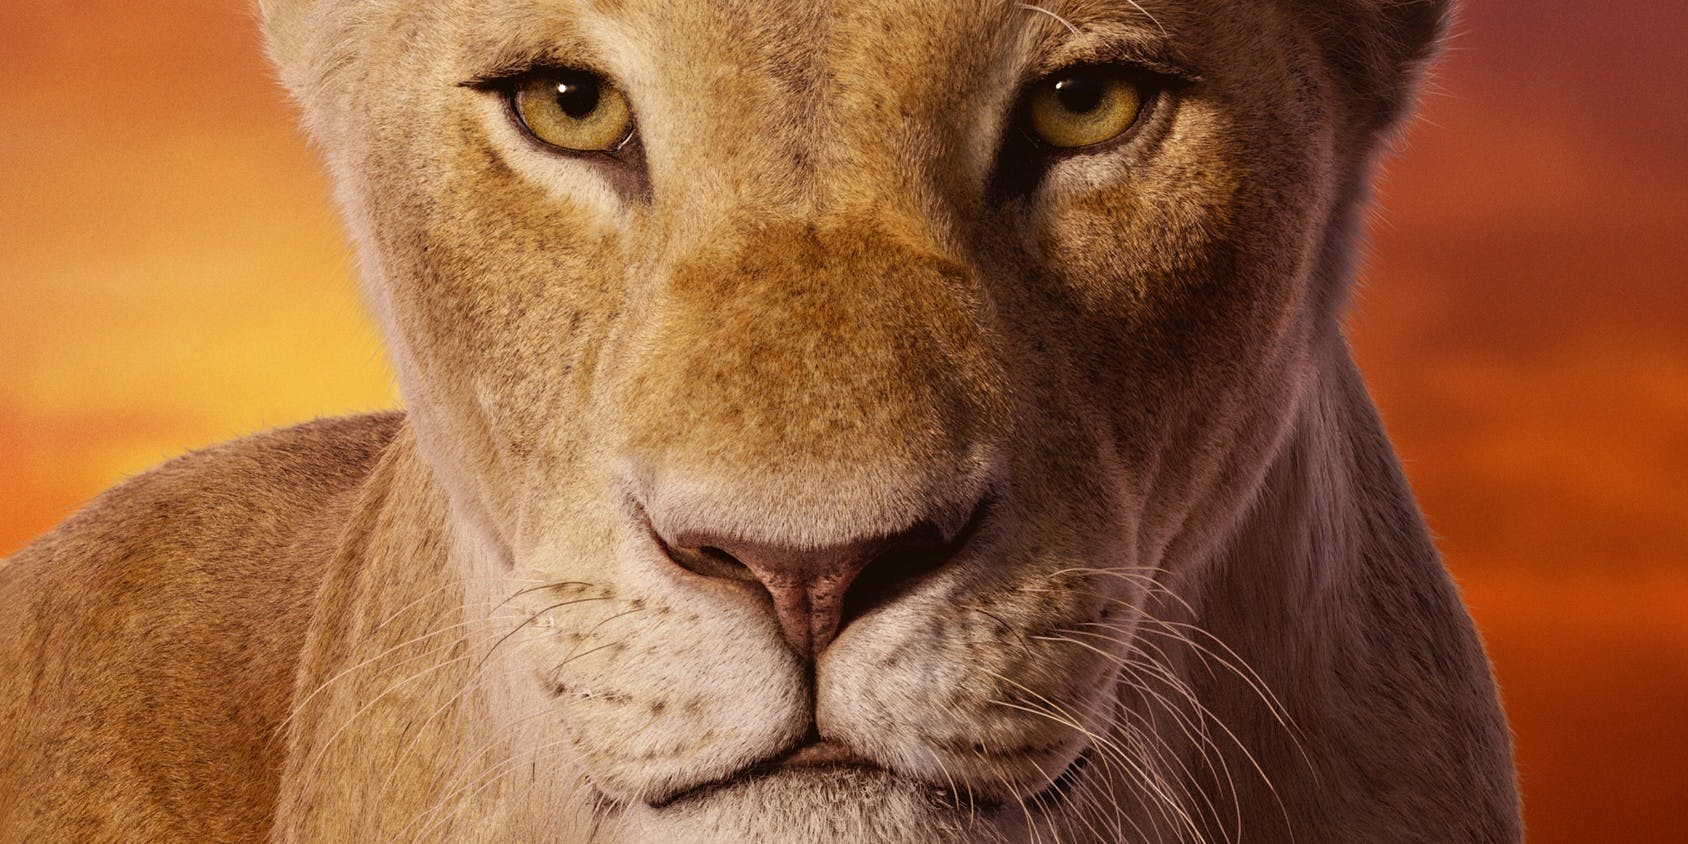 The Internet Slams Disney For Those New Lion King Posters